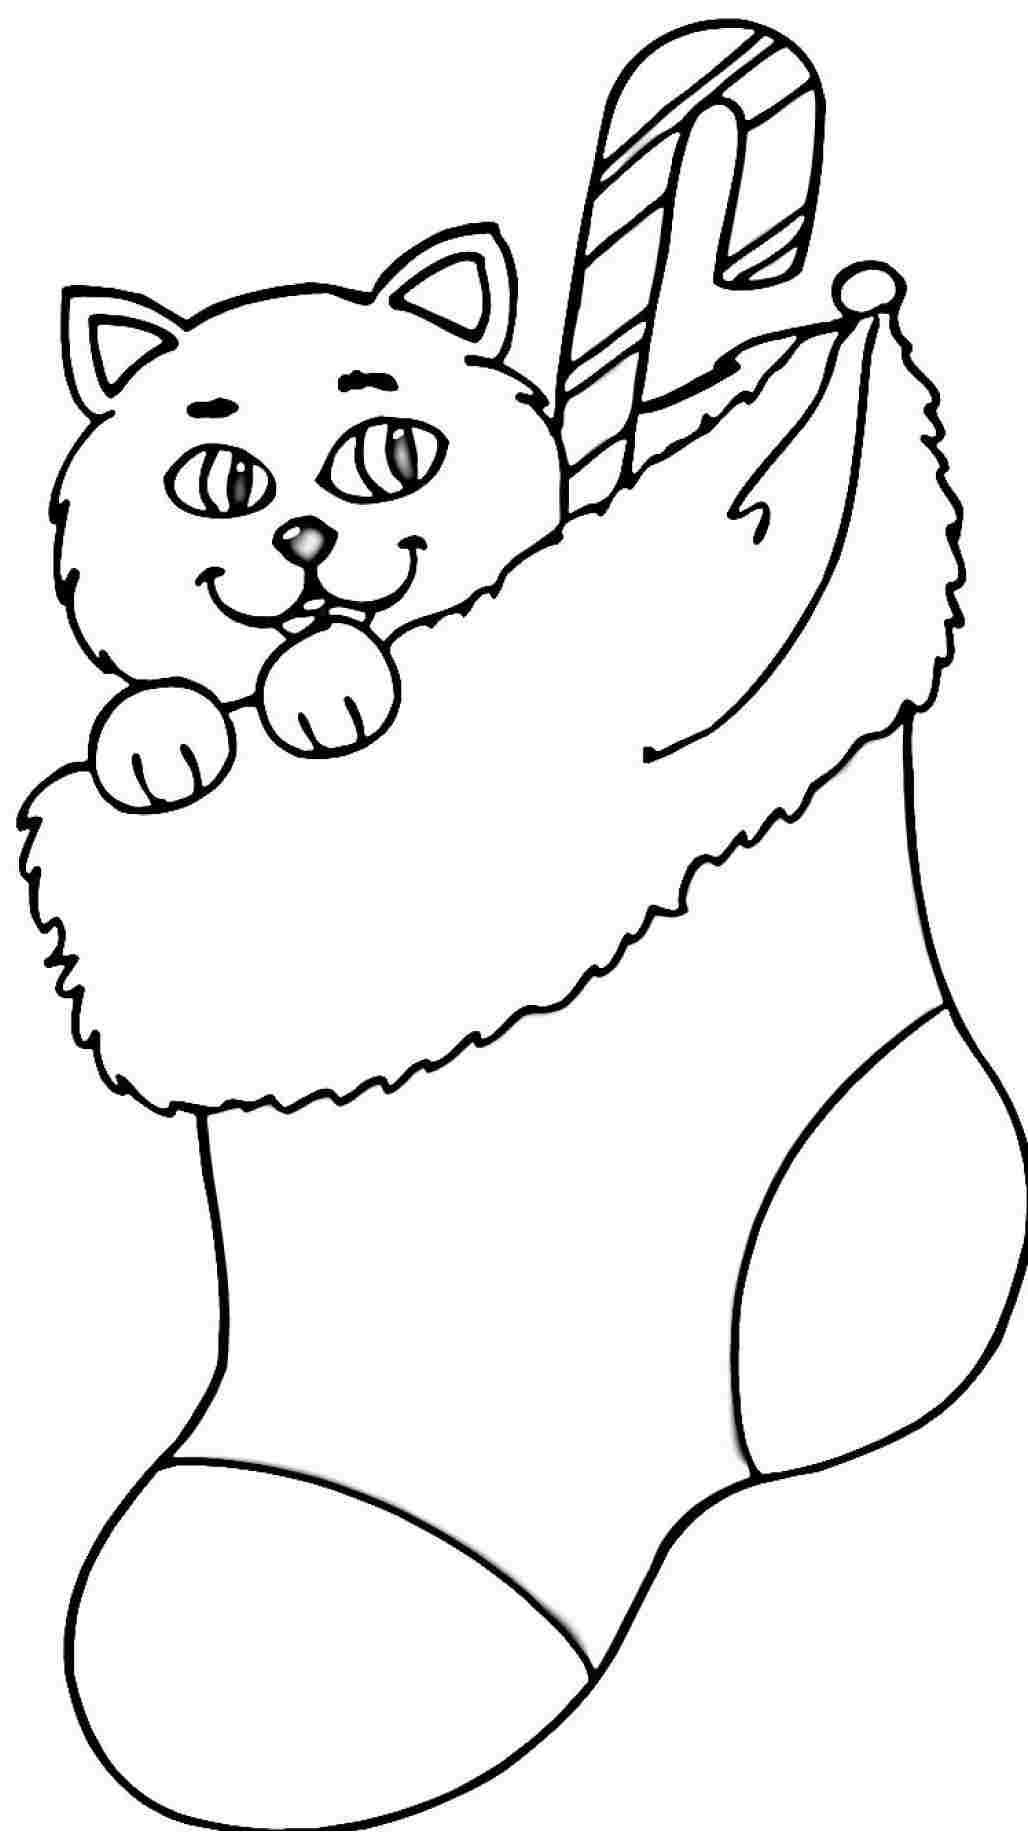 Printable Christmas Stocking Coloring Pages